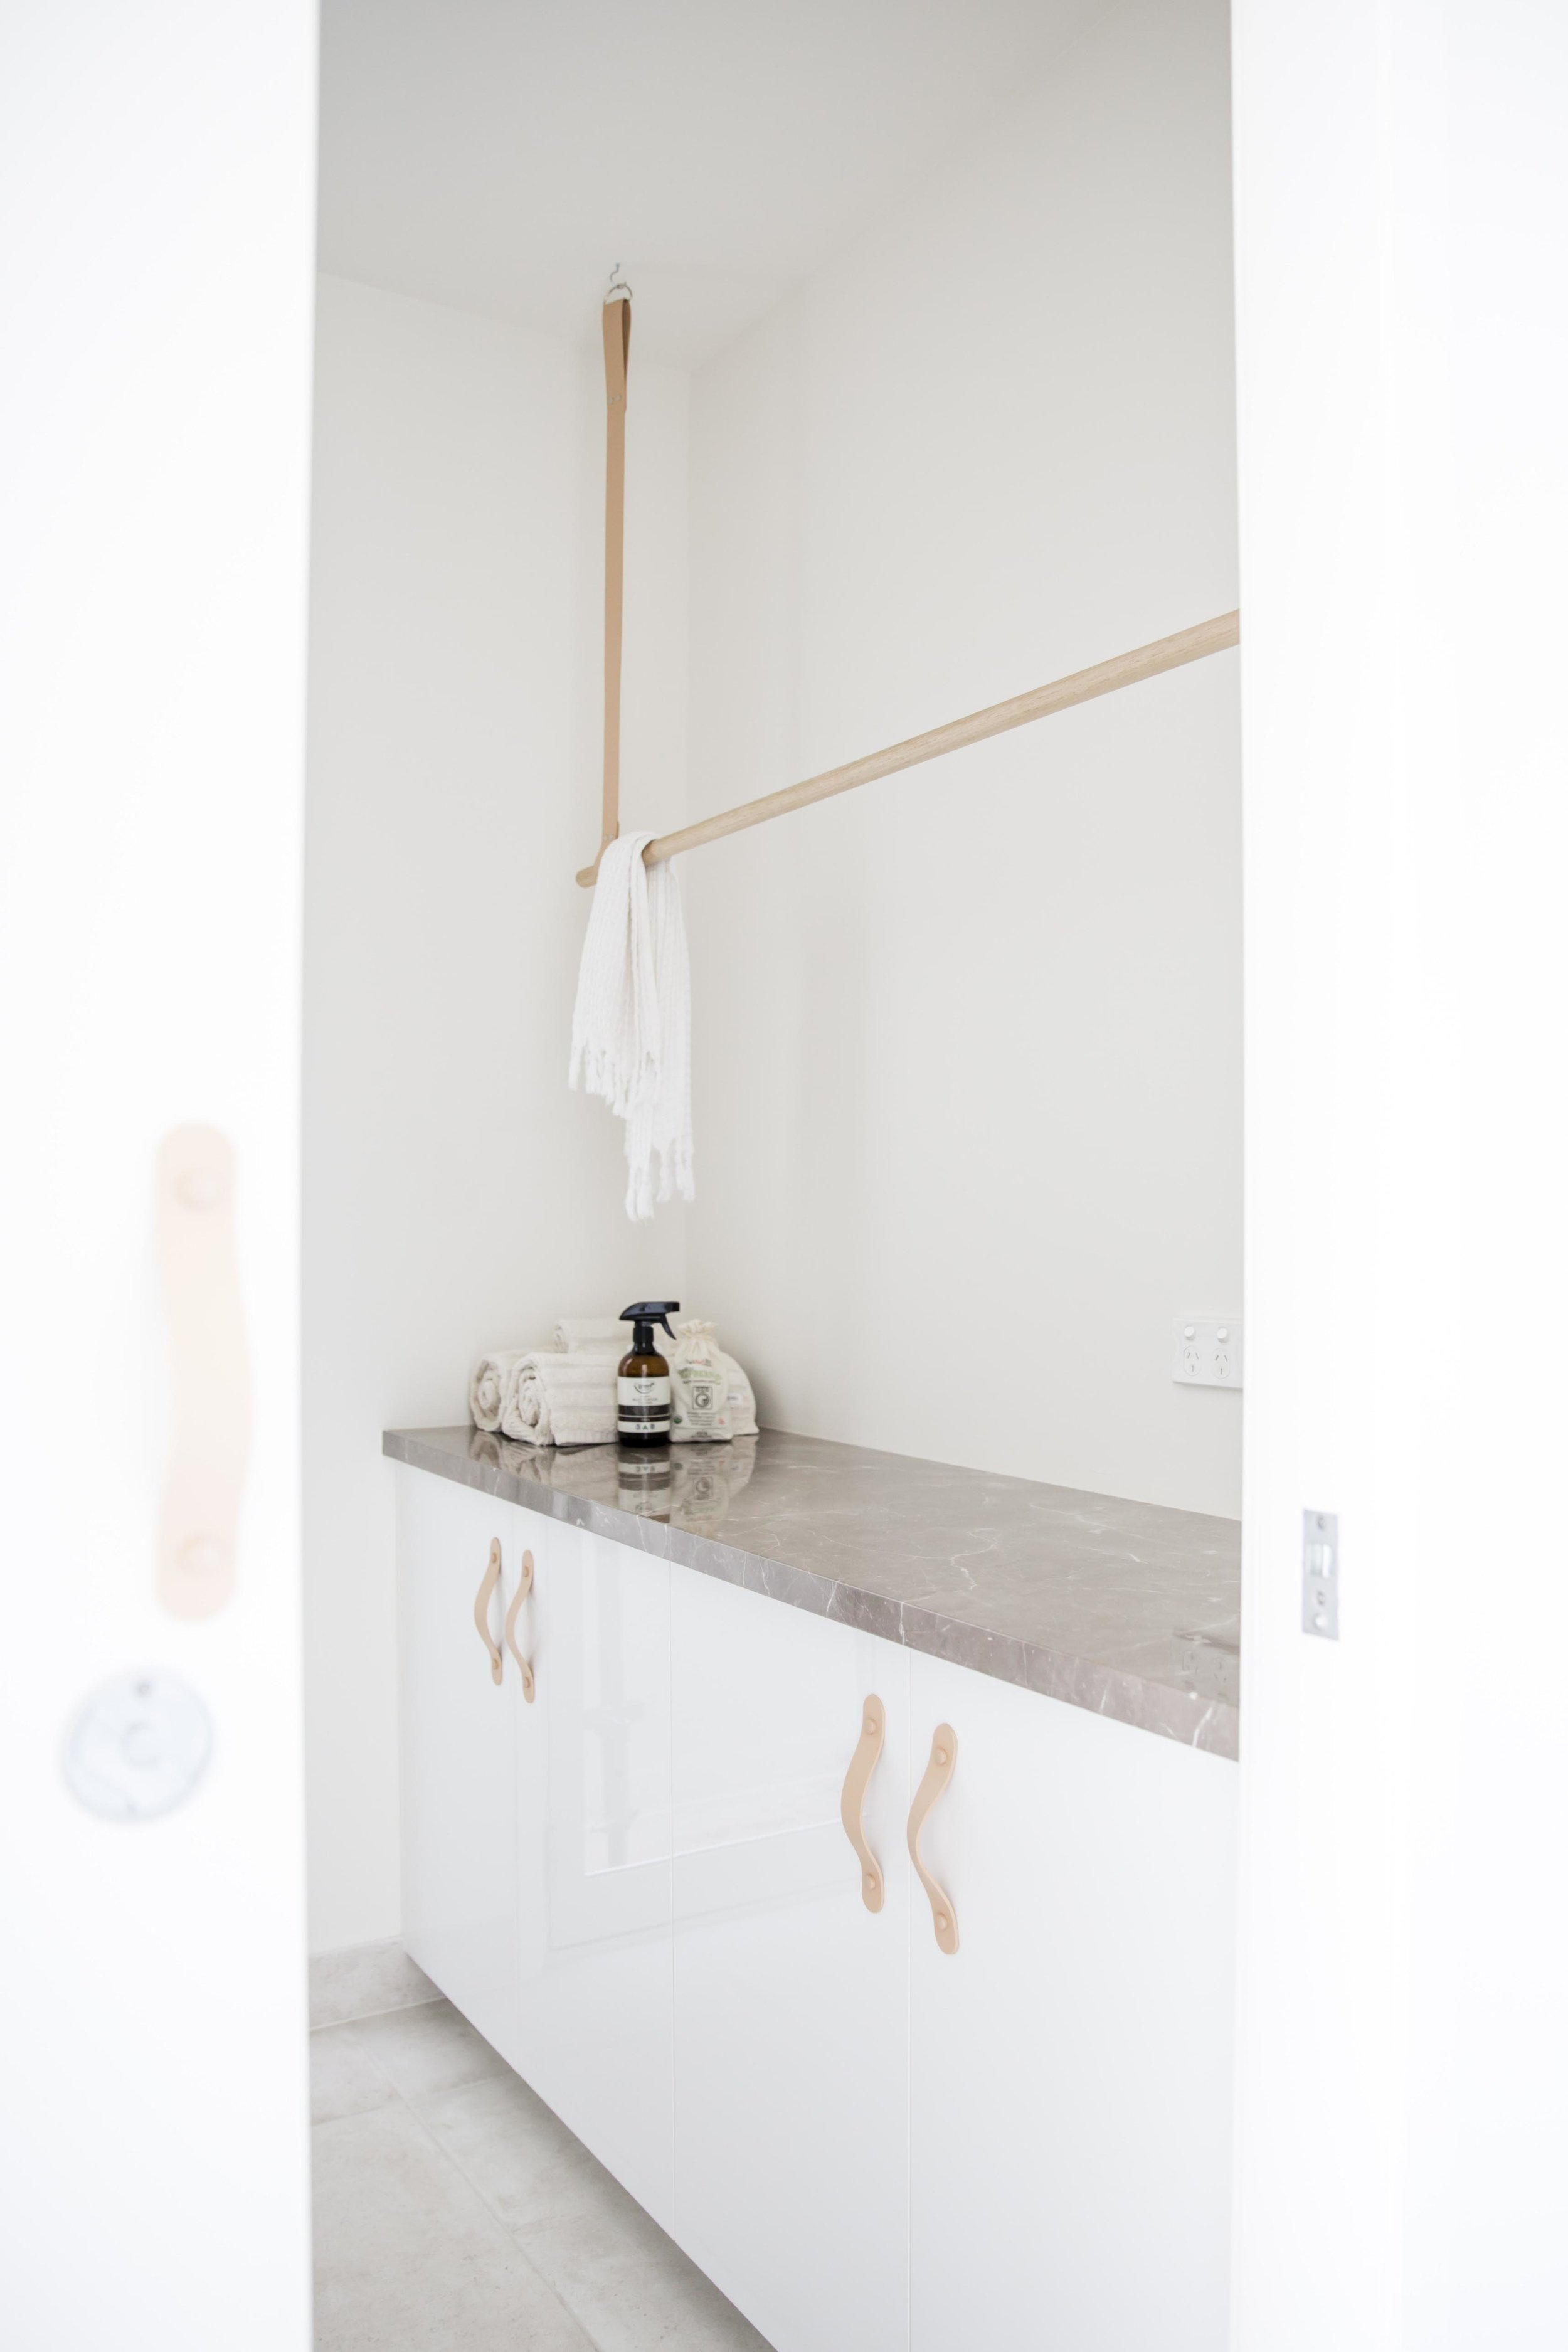 Nude leather and oak rod, hanging from the ceiling, Australian designed product.    H&G Designs